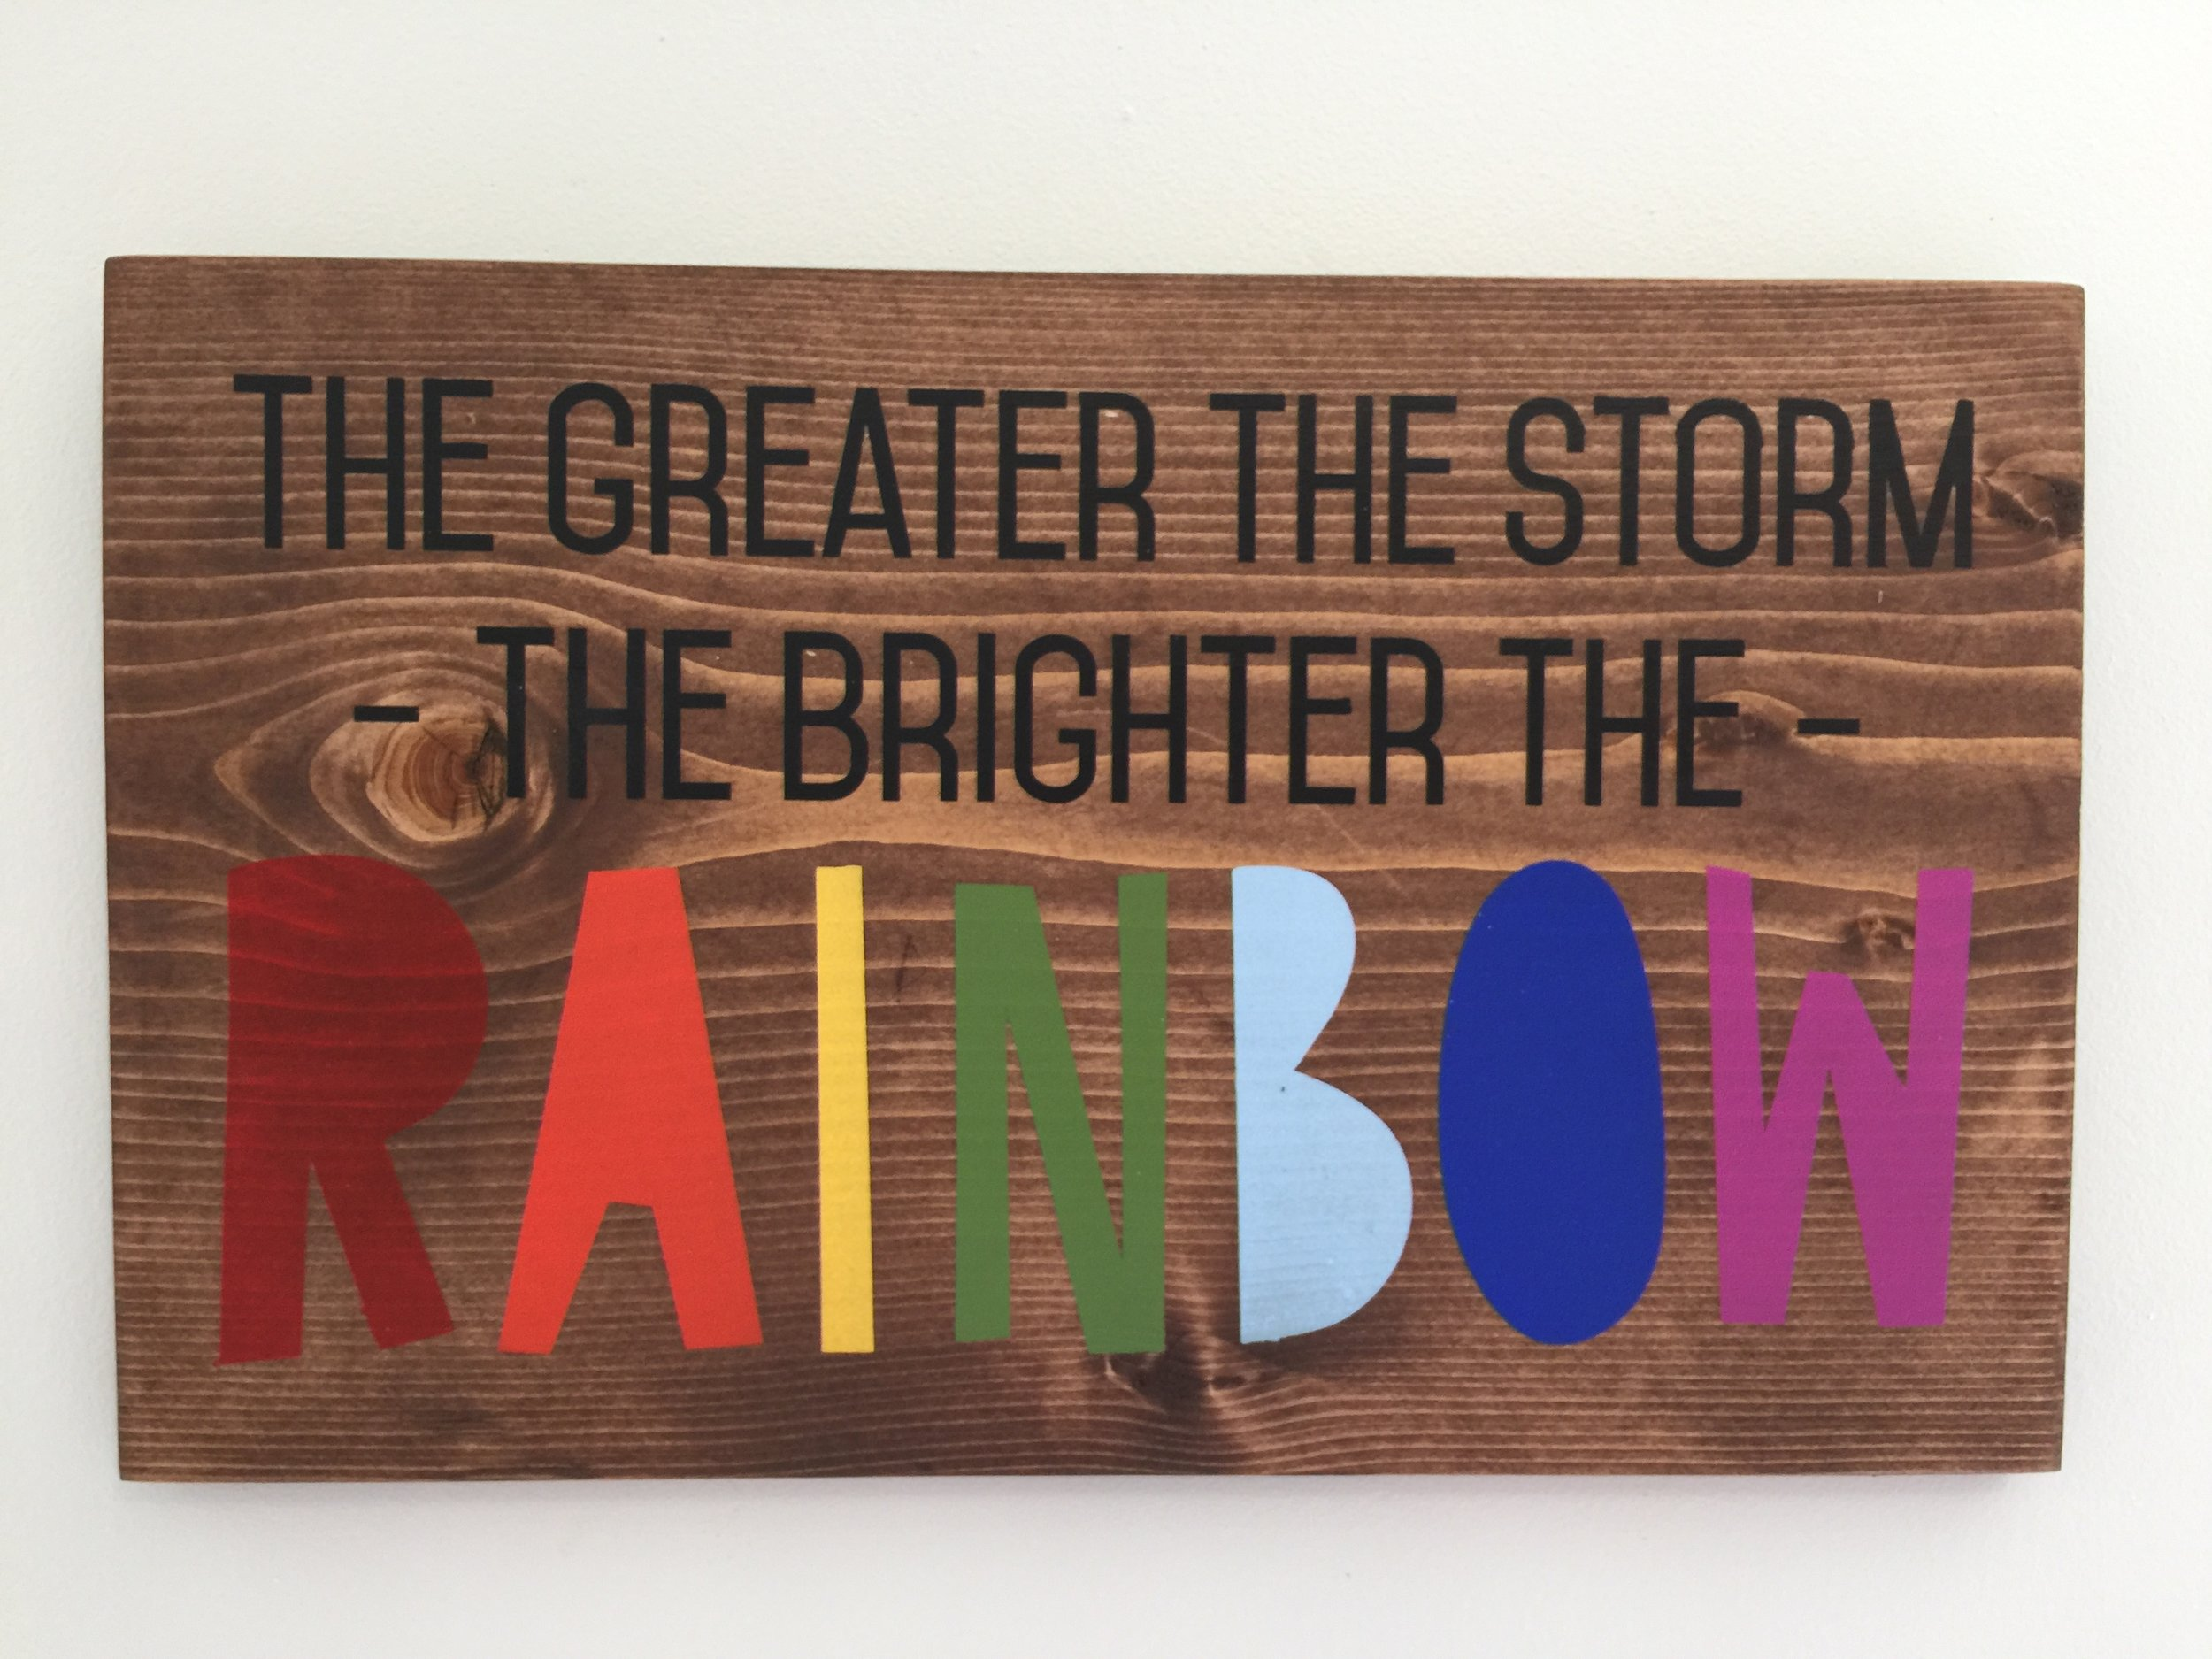 The Greater the Storm, the Brighter the Rainbow